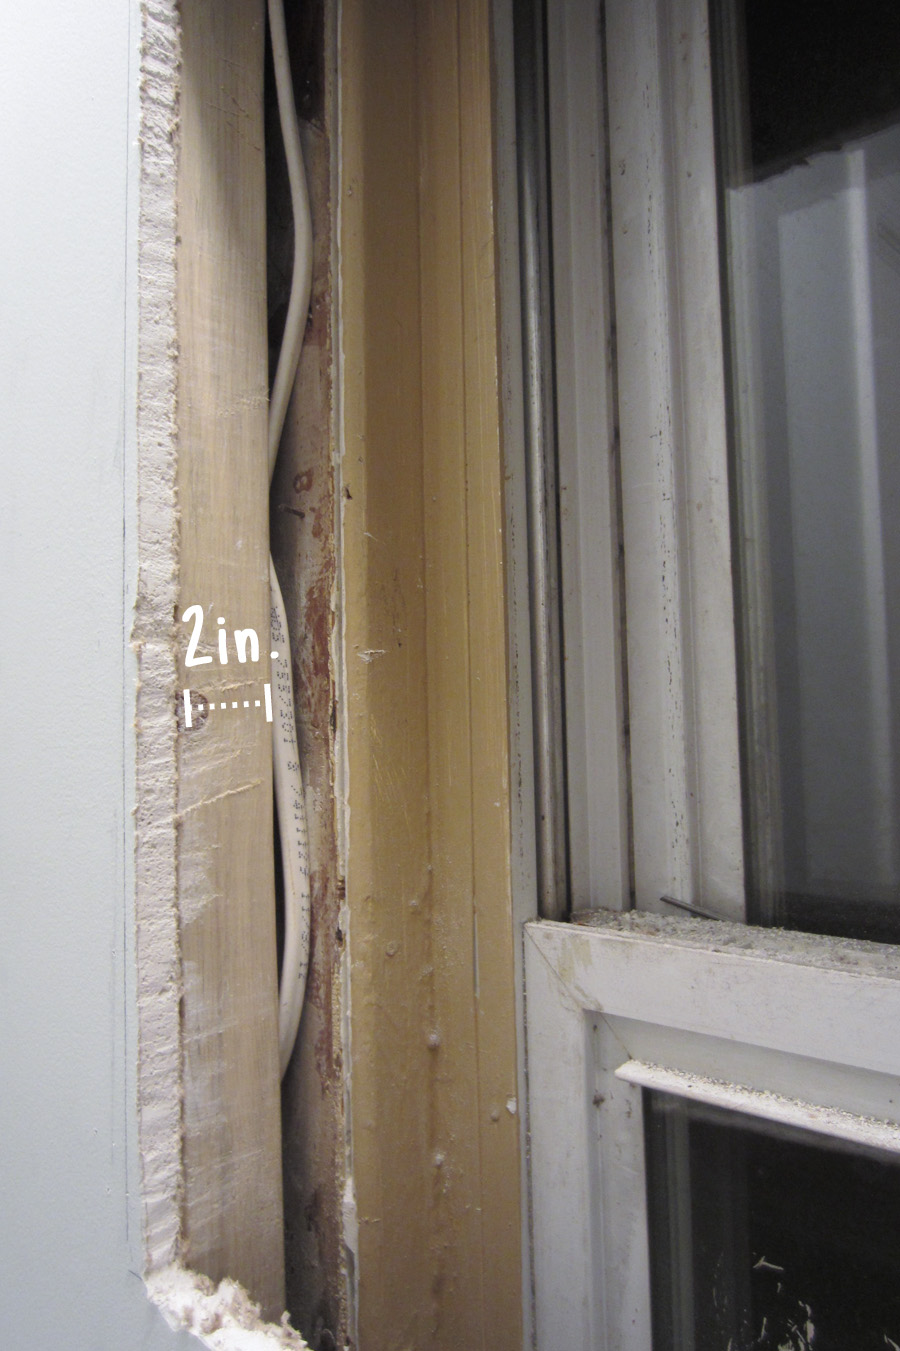 The 2x4 was rotated to accommodate the window that was in the way of the stud